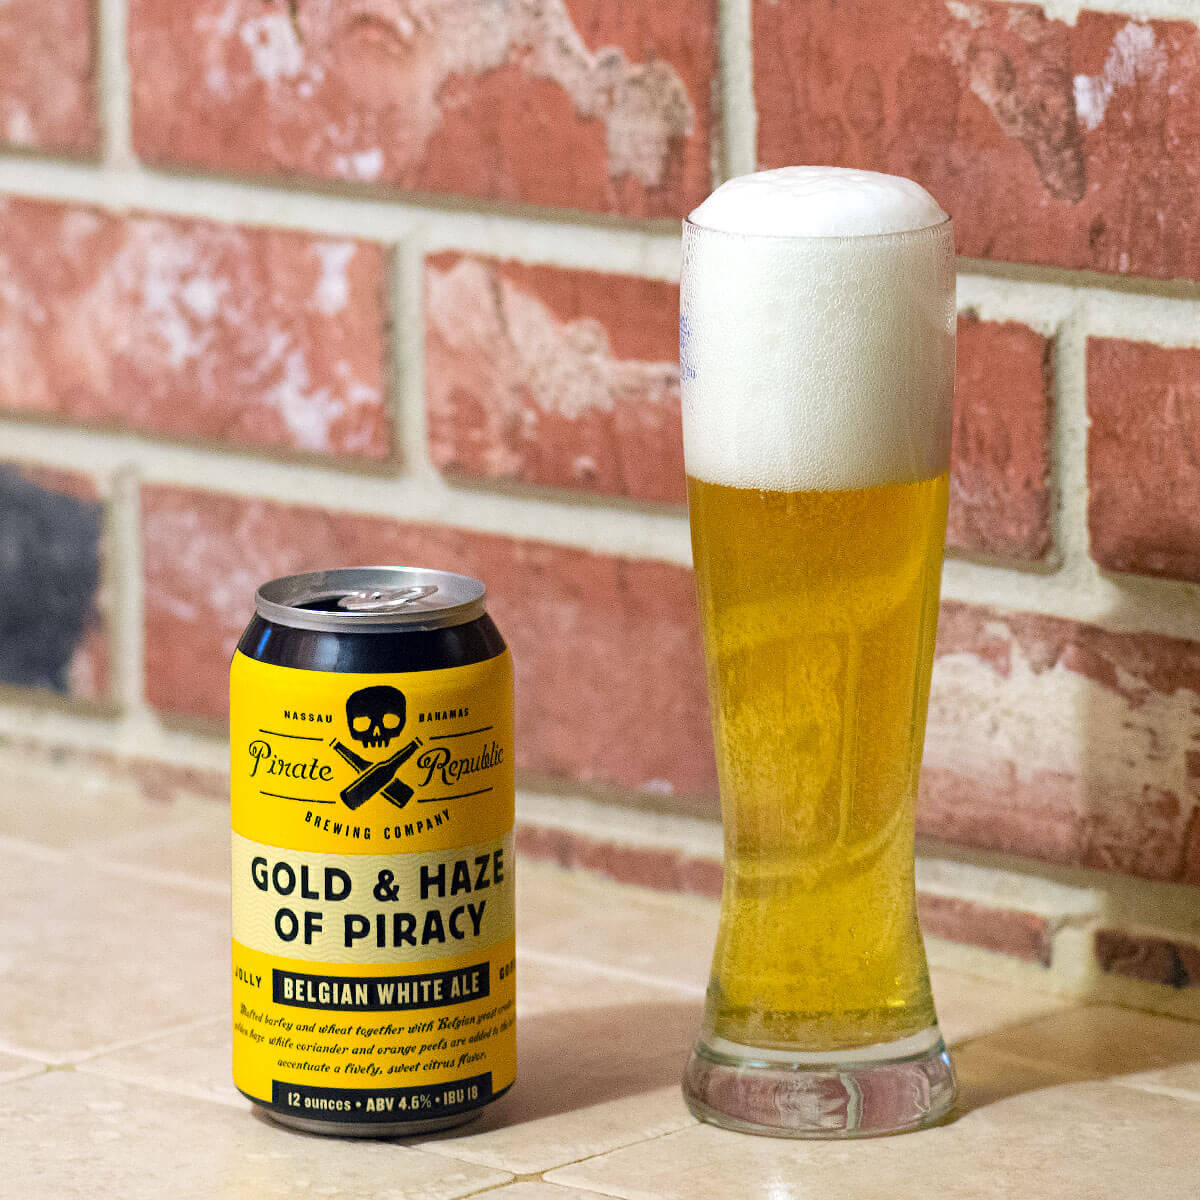 Gold & Haze of Piracy, a Belgian-style Witbier by Pirate Republic Brewing Company